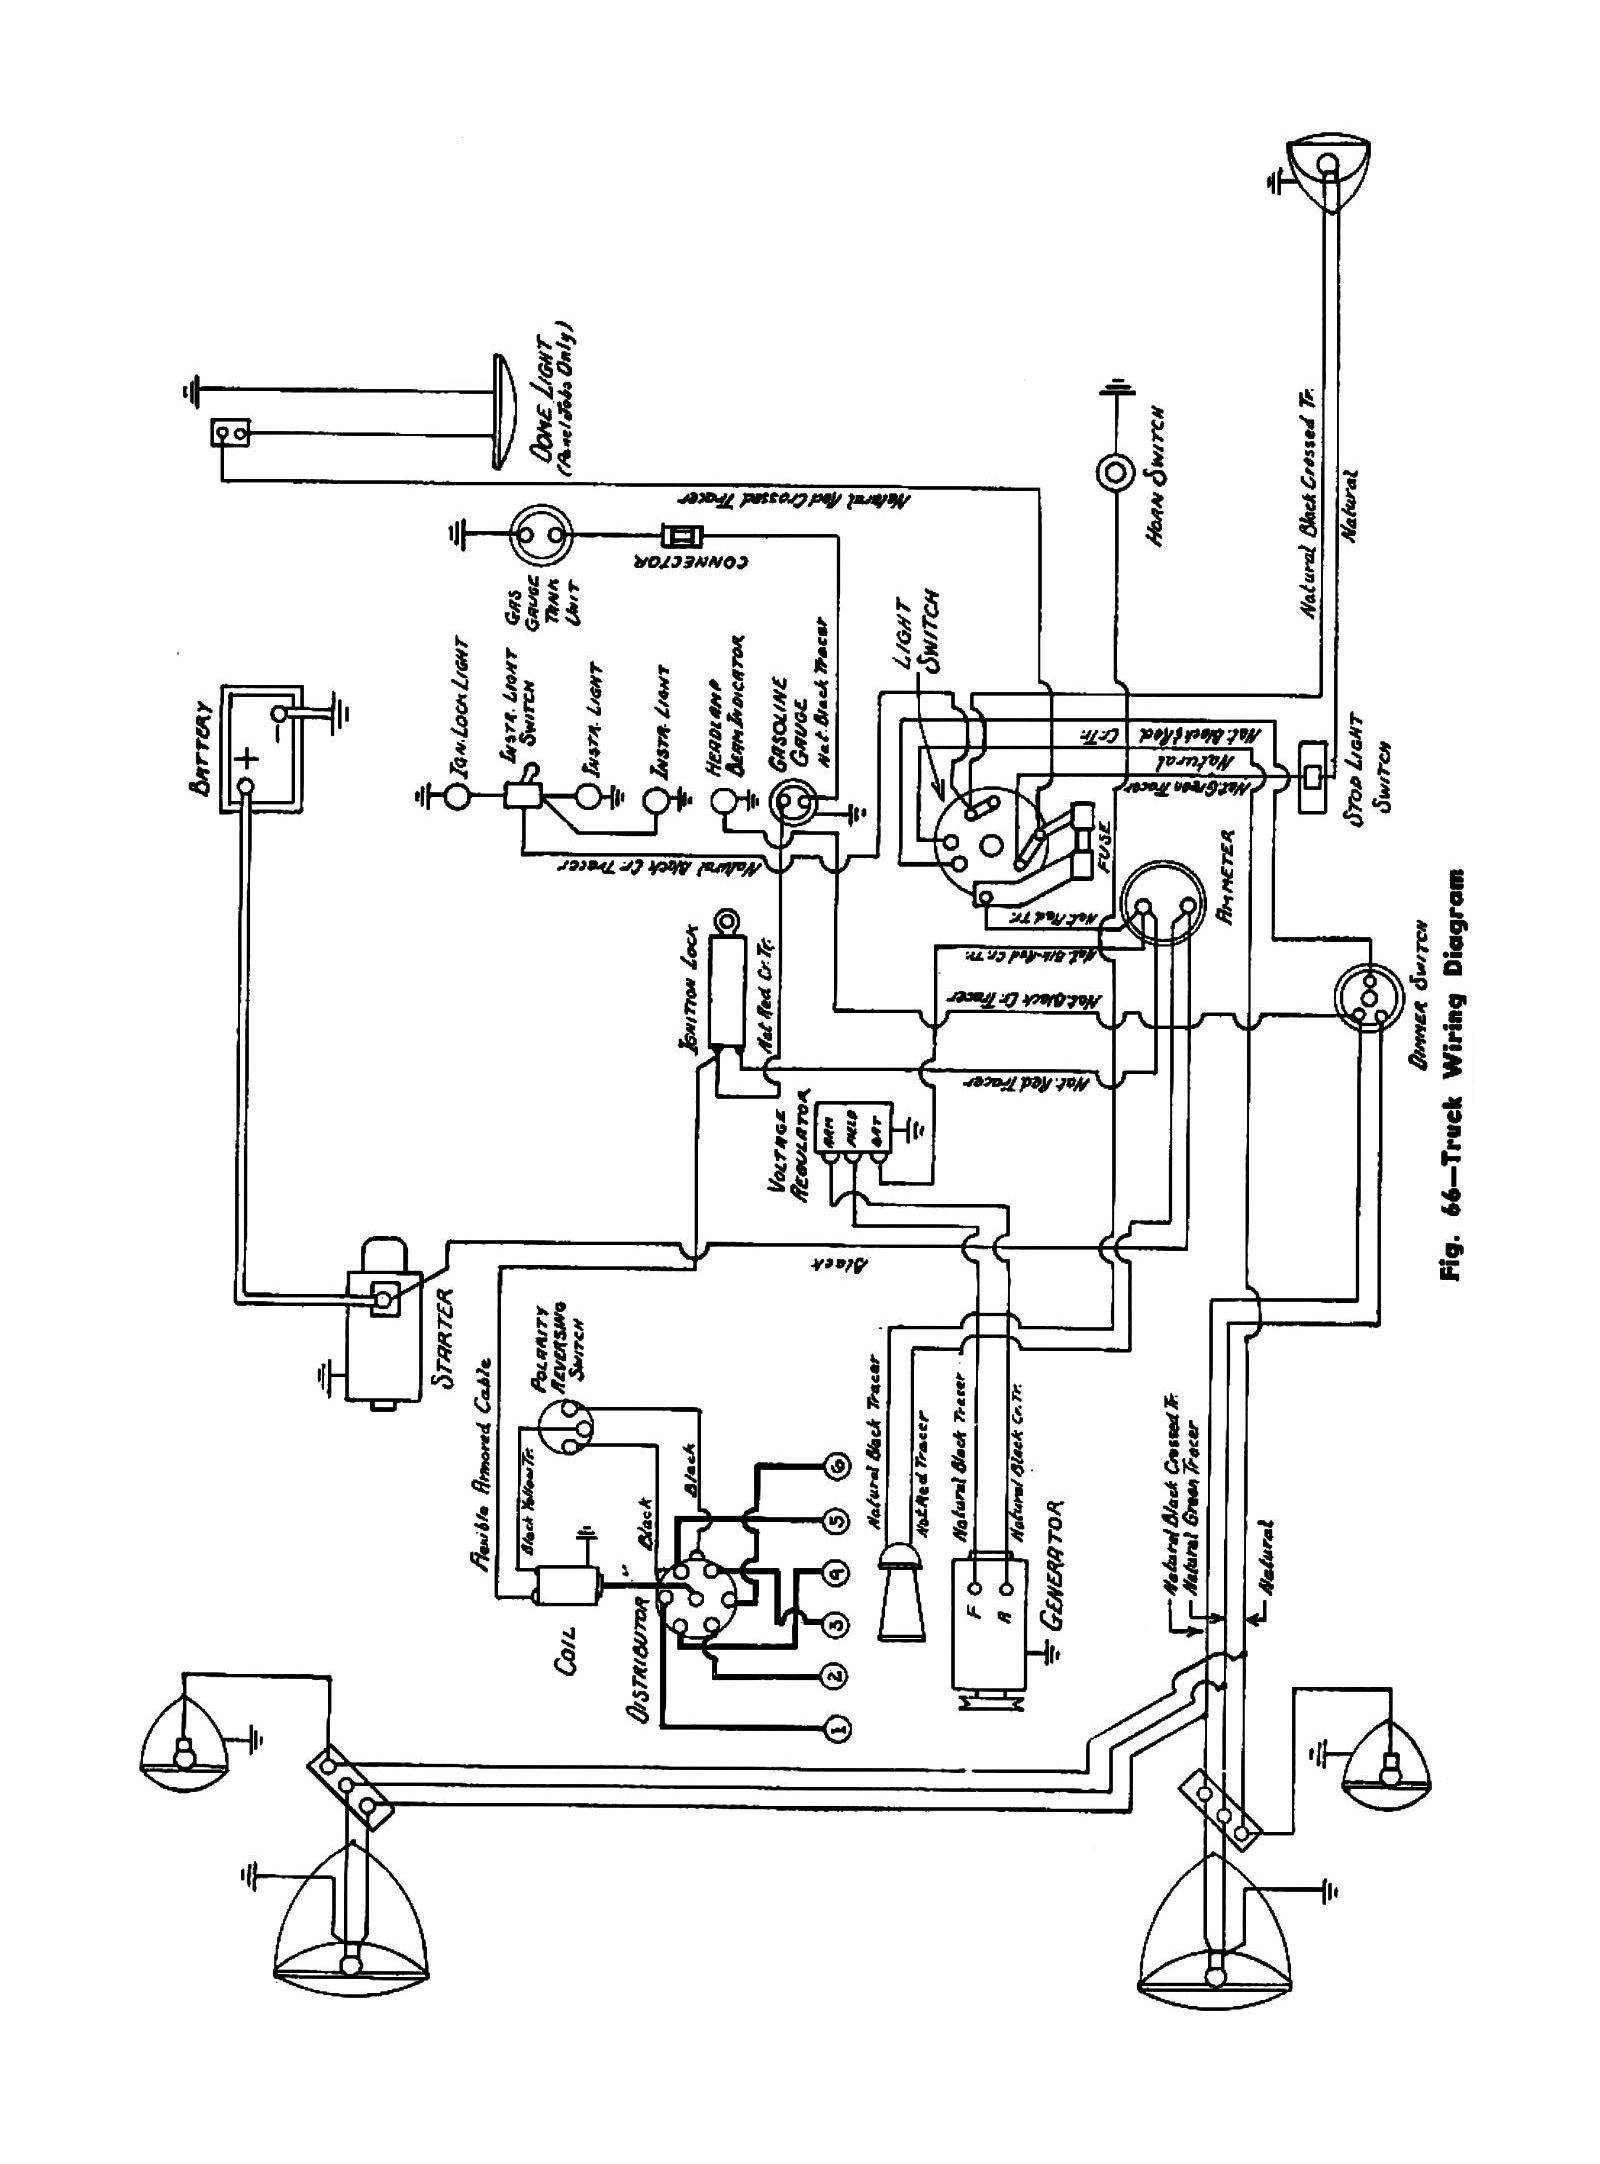 45truck ihc truck wiring diagrams mazda truck wiring diagrams \u2022 free 1999 Dodge Fuse Box Diagram at bakdesigns.co